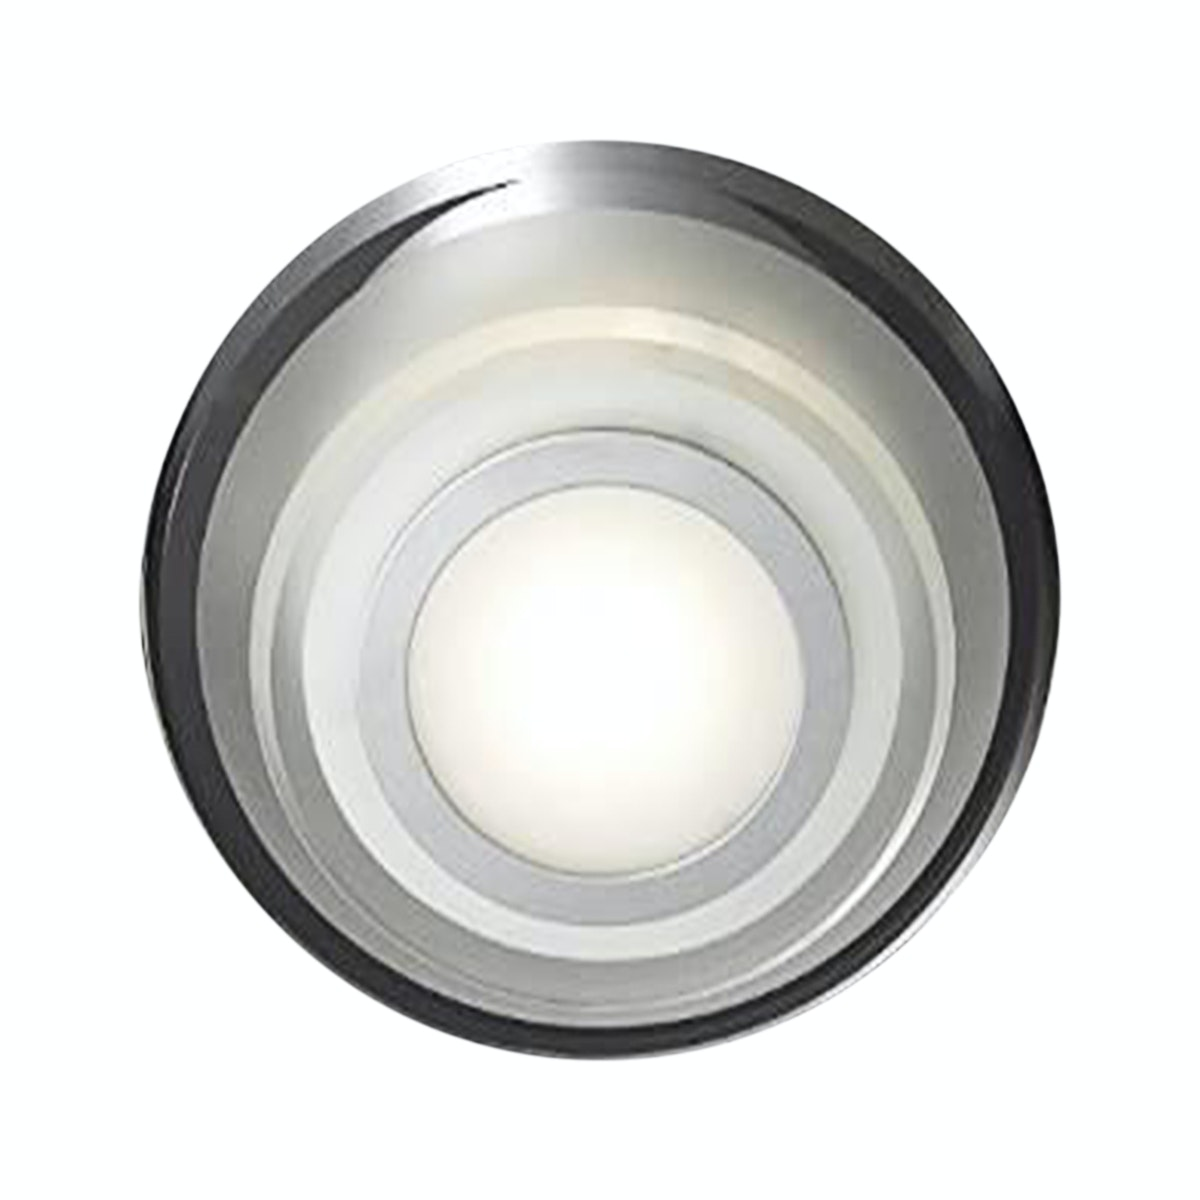 3+Projects Lampu Plafon/Ceiling Lamp Metal Base White Glass 3+DL-C29375Y-2P-DY